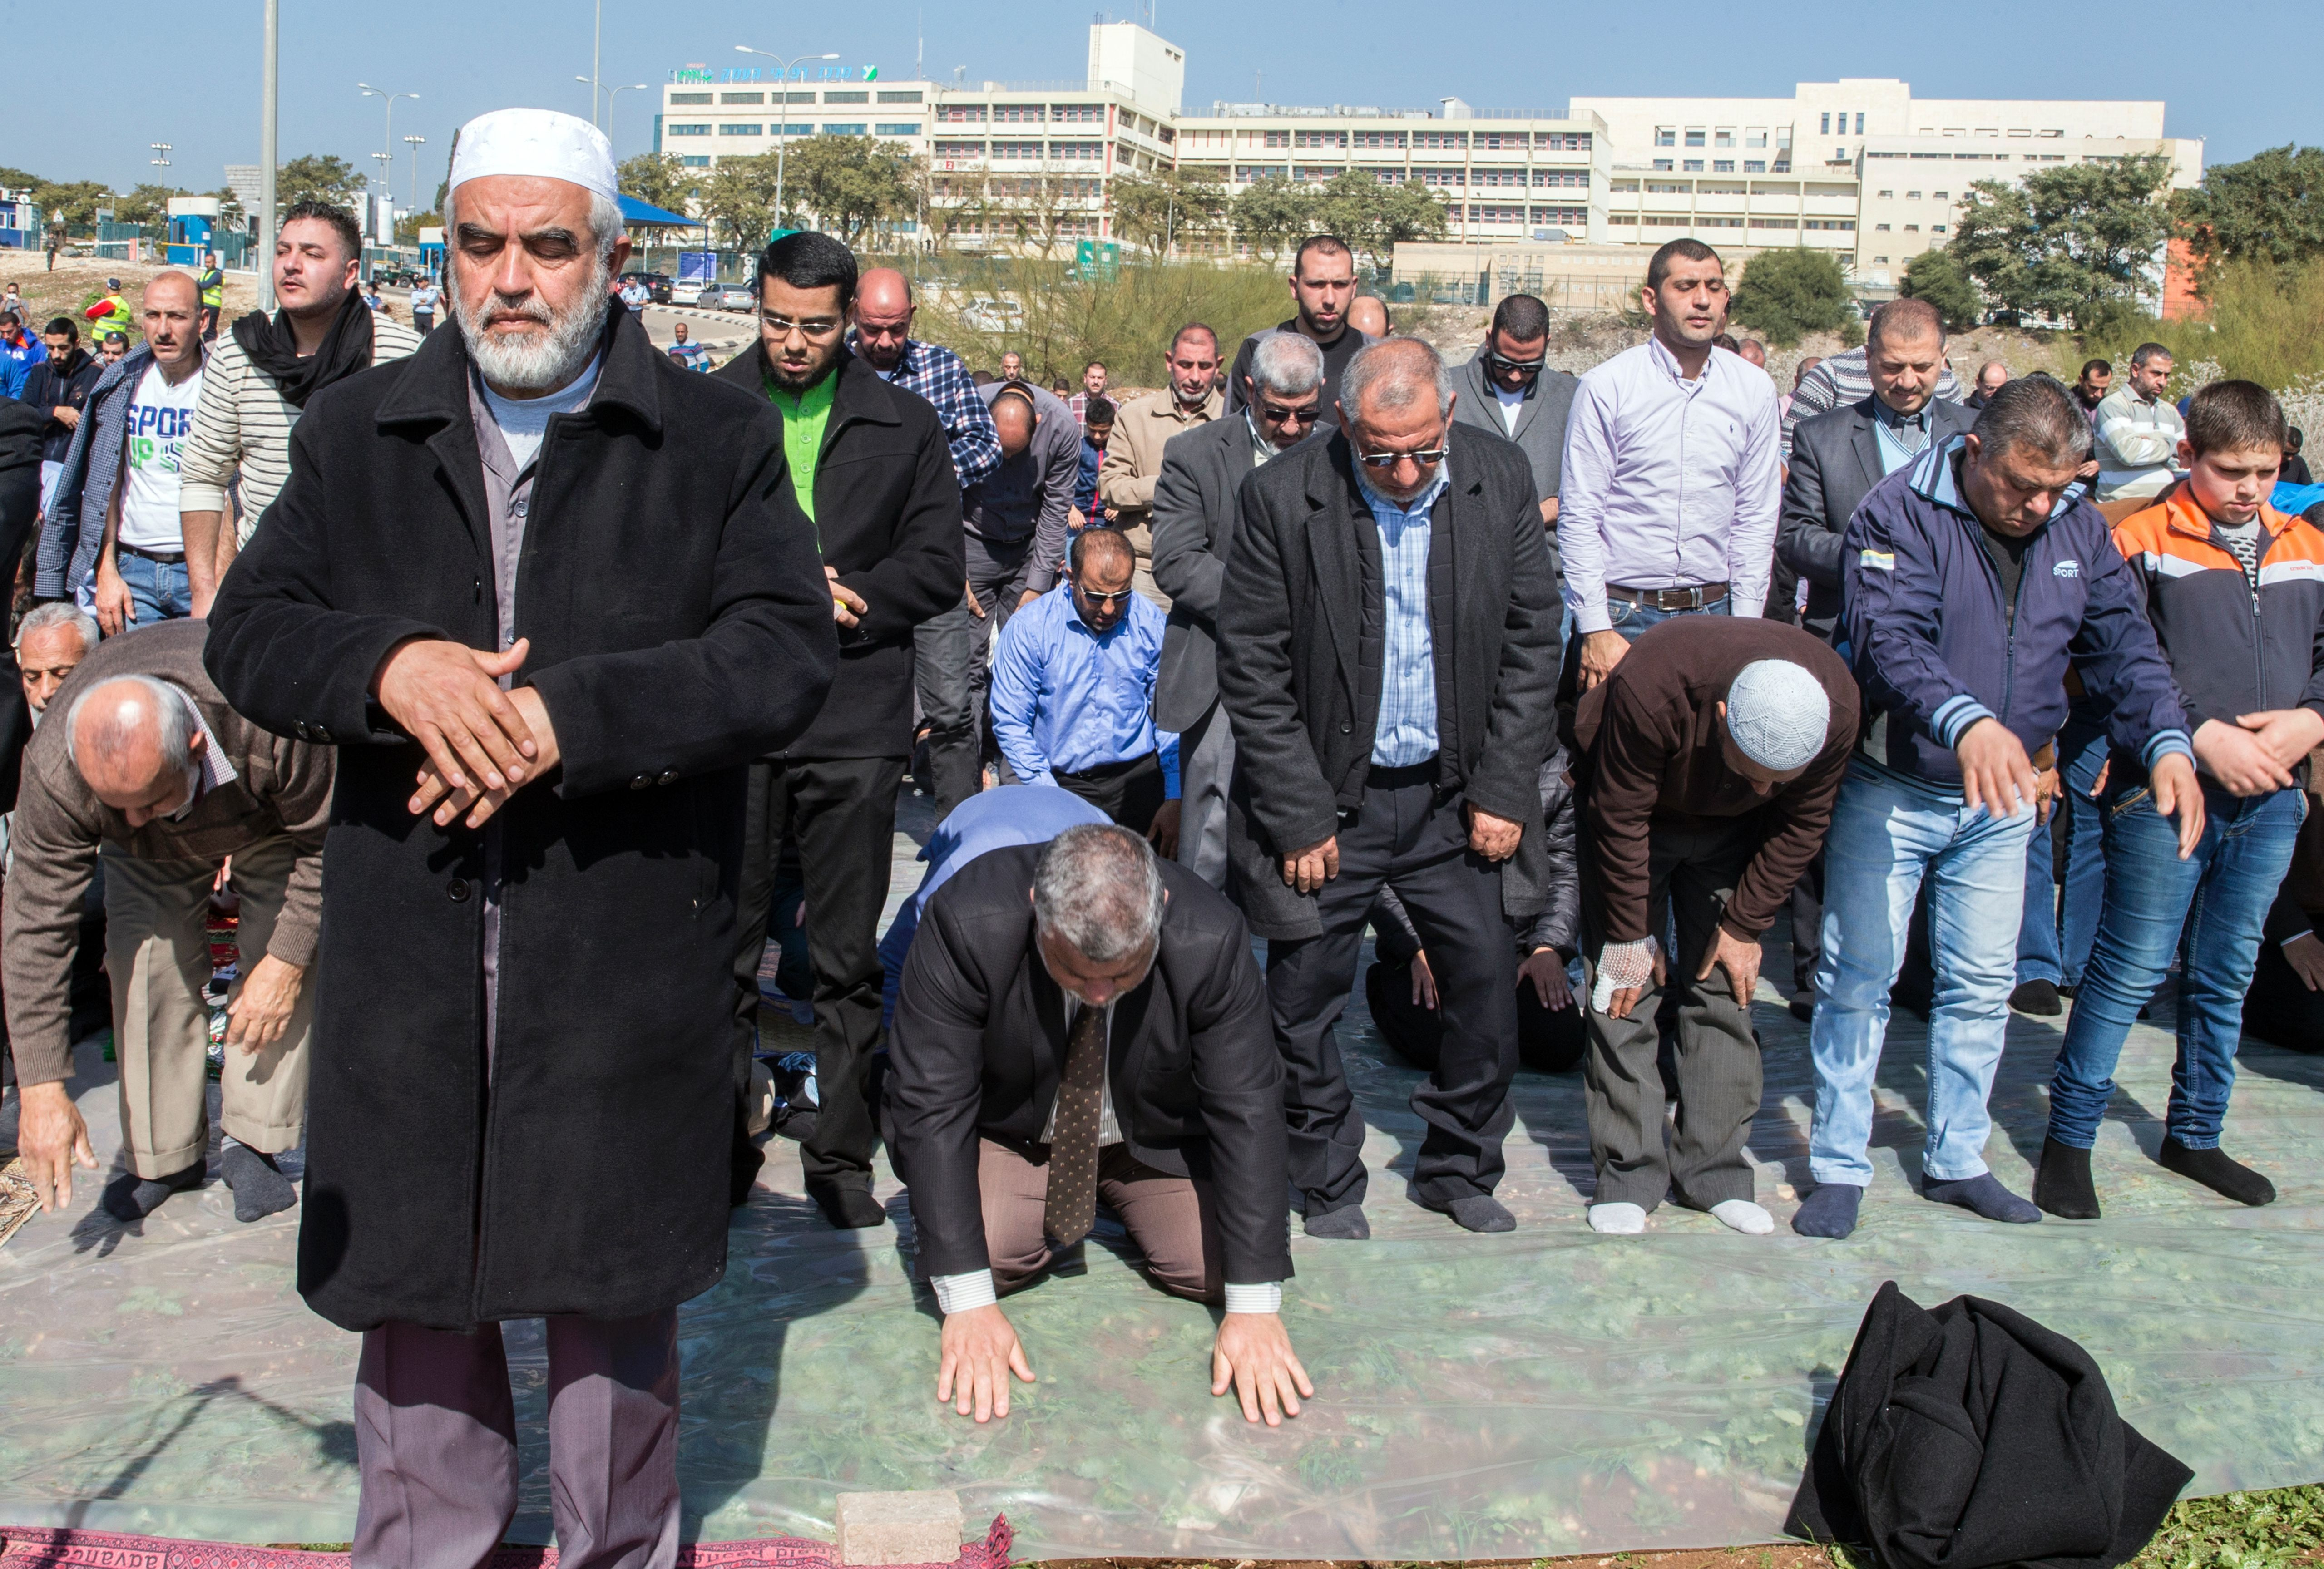 Israeli Arabs and Sheikh Raed Salah (front-L), the leader of the radical northern wing of the Islamic Movement in Israel, takes part in a prayer in support for the release of Mohammed al-Qiq, a Palestinian prisoner on hunger strike, outside the hospital where he is being treated in the northern Israeli town of Afula on February 12, 2016.